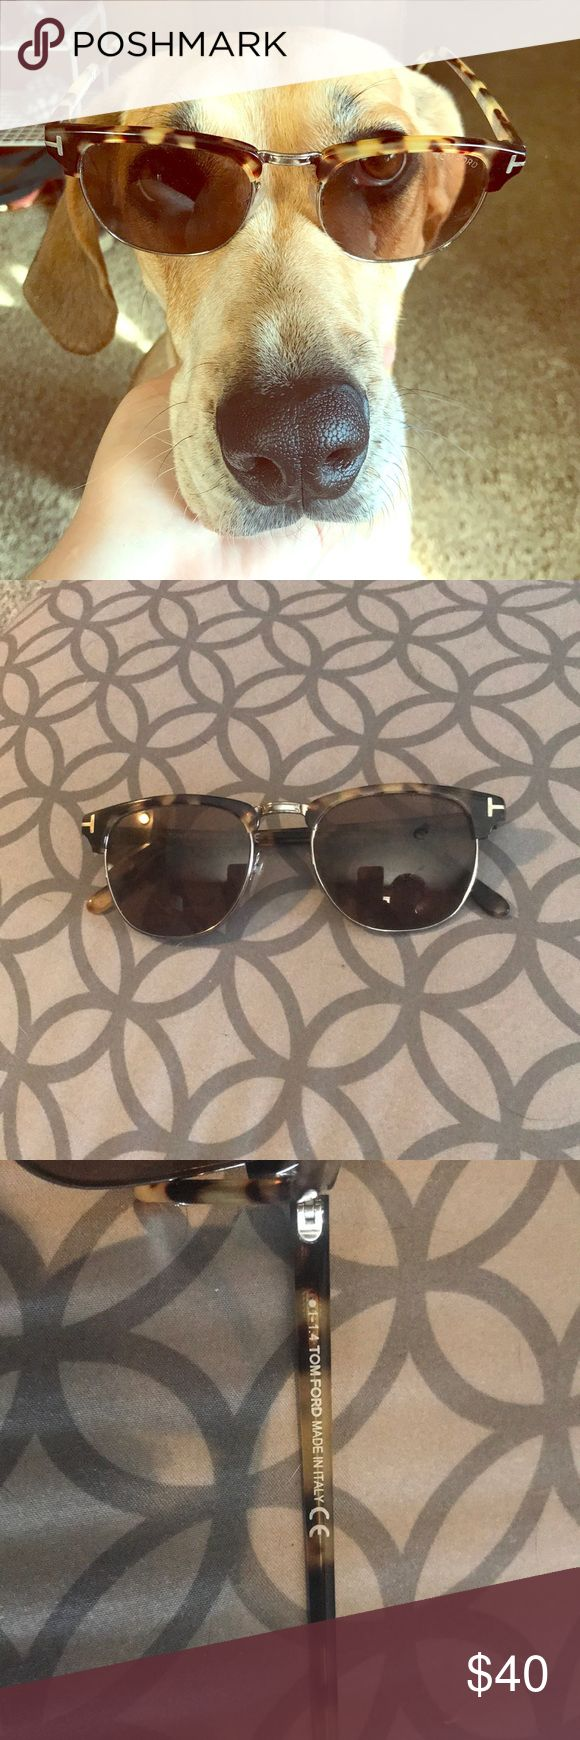 Tom Ford tortoiseshell sunglasses Tortoiseshell browline sunglasses. unworn, in new condition Tom Ford Accessories Sunglasses